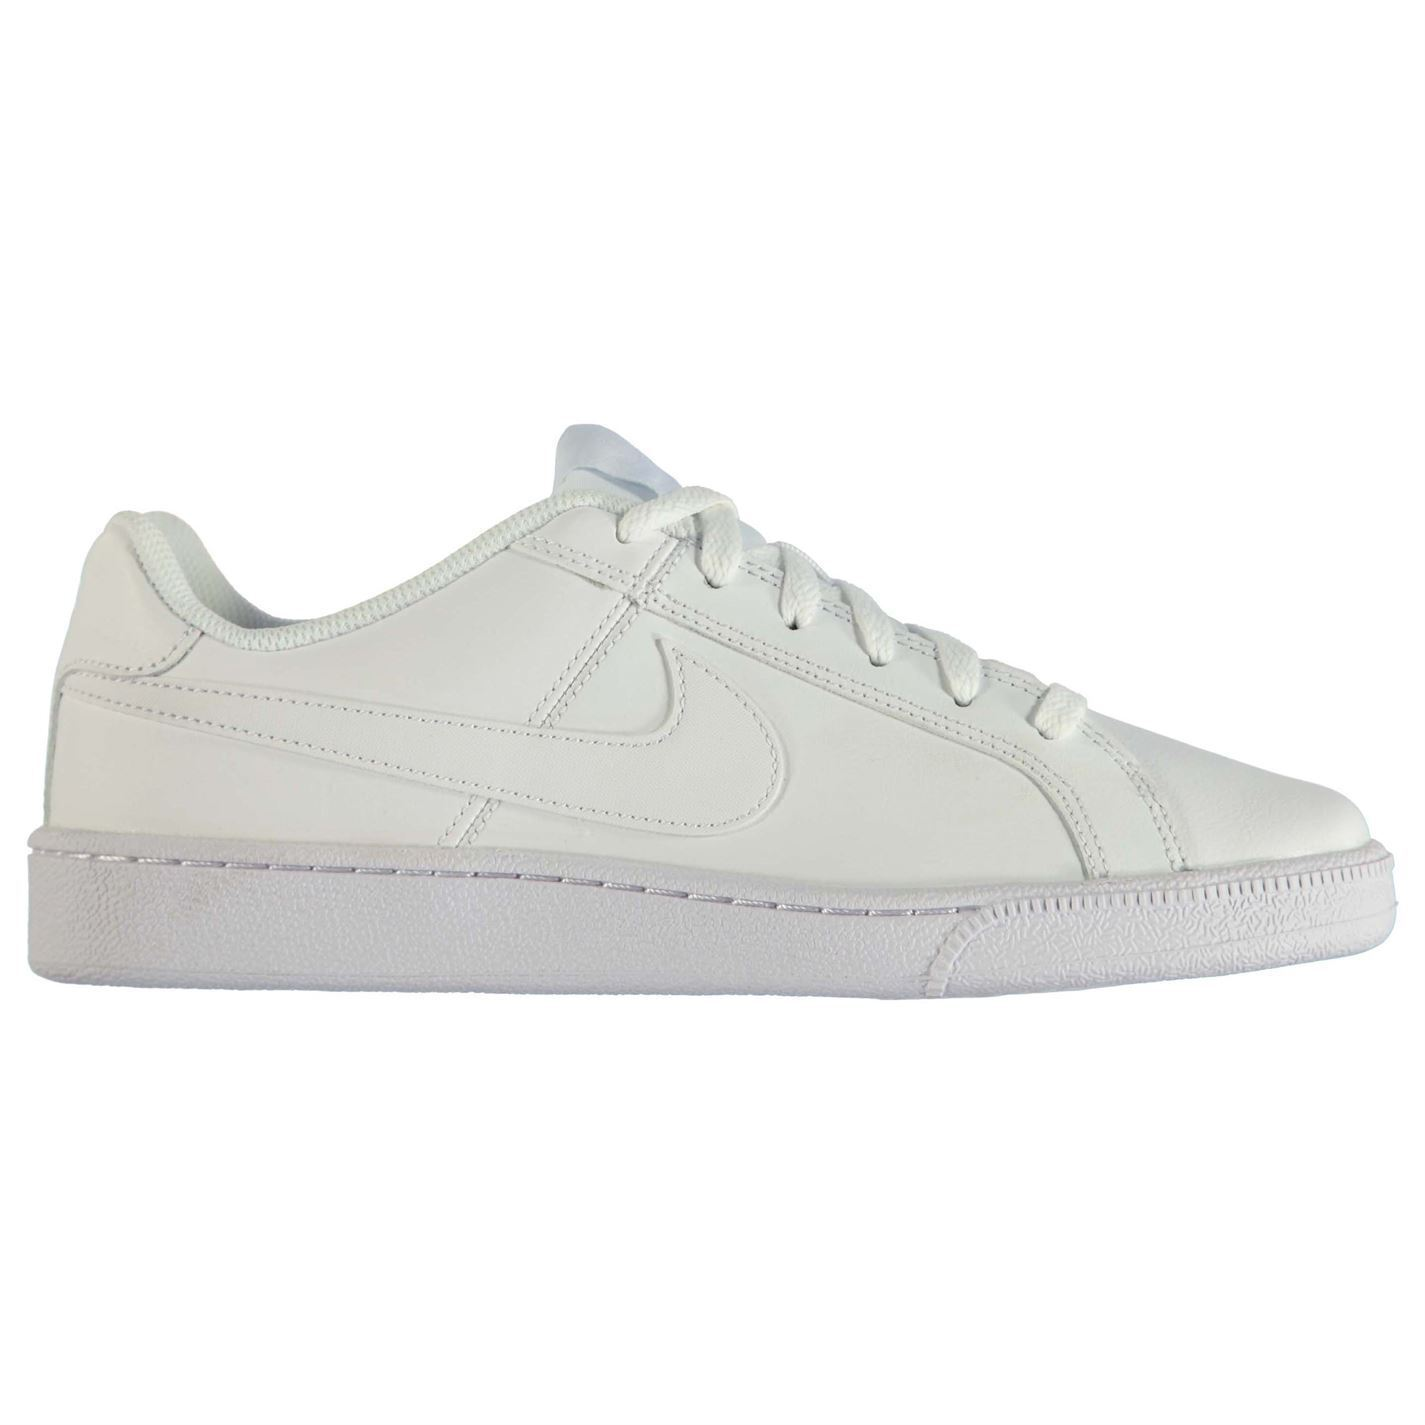 Nike Court Royale Trainers Mens White/White Sports Shoes Sneakers Footwear